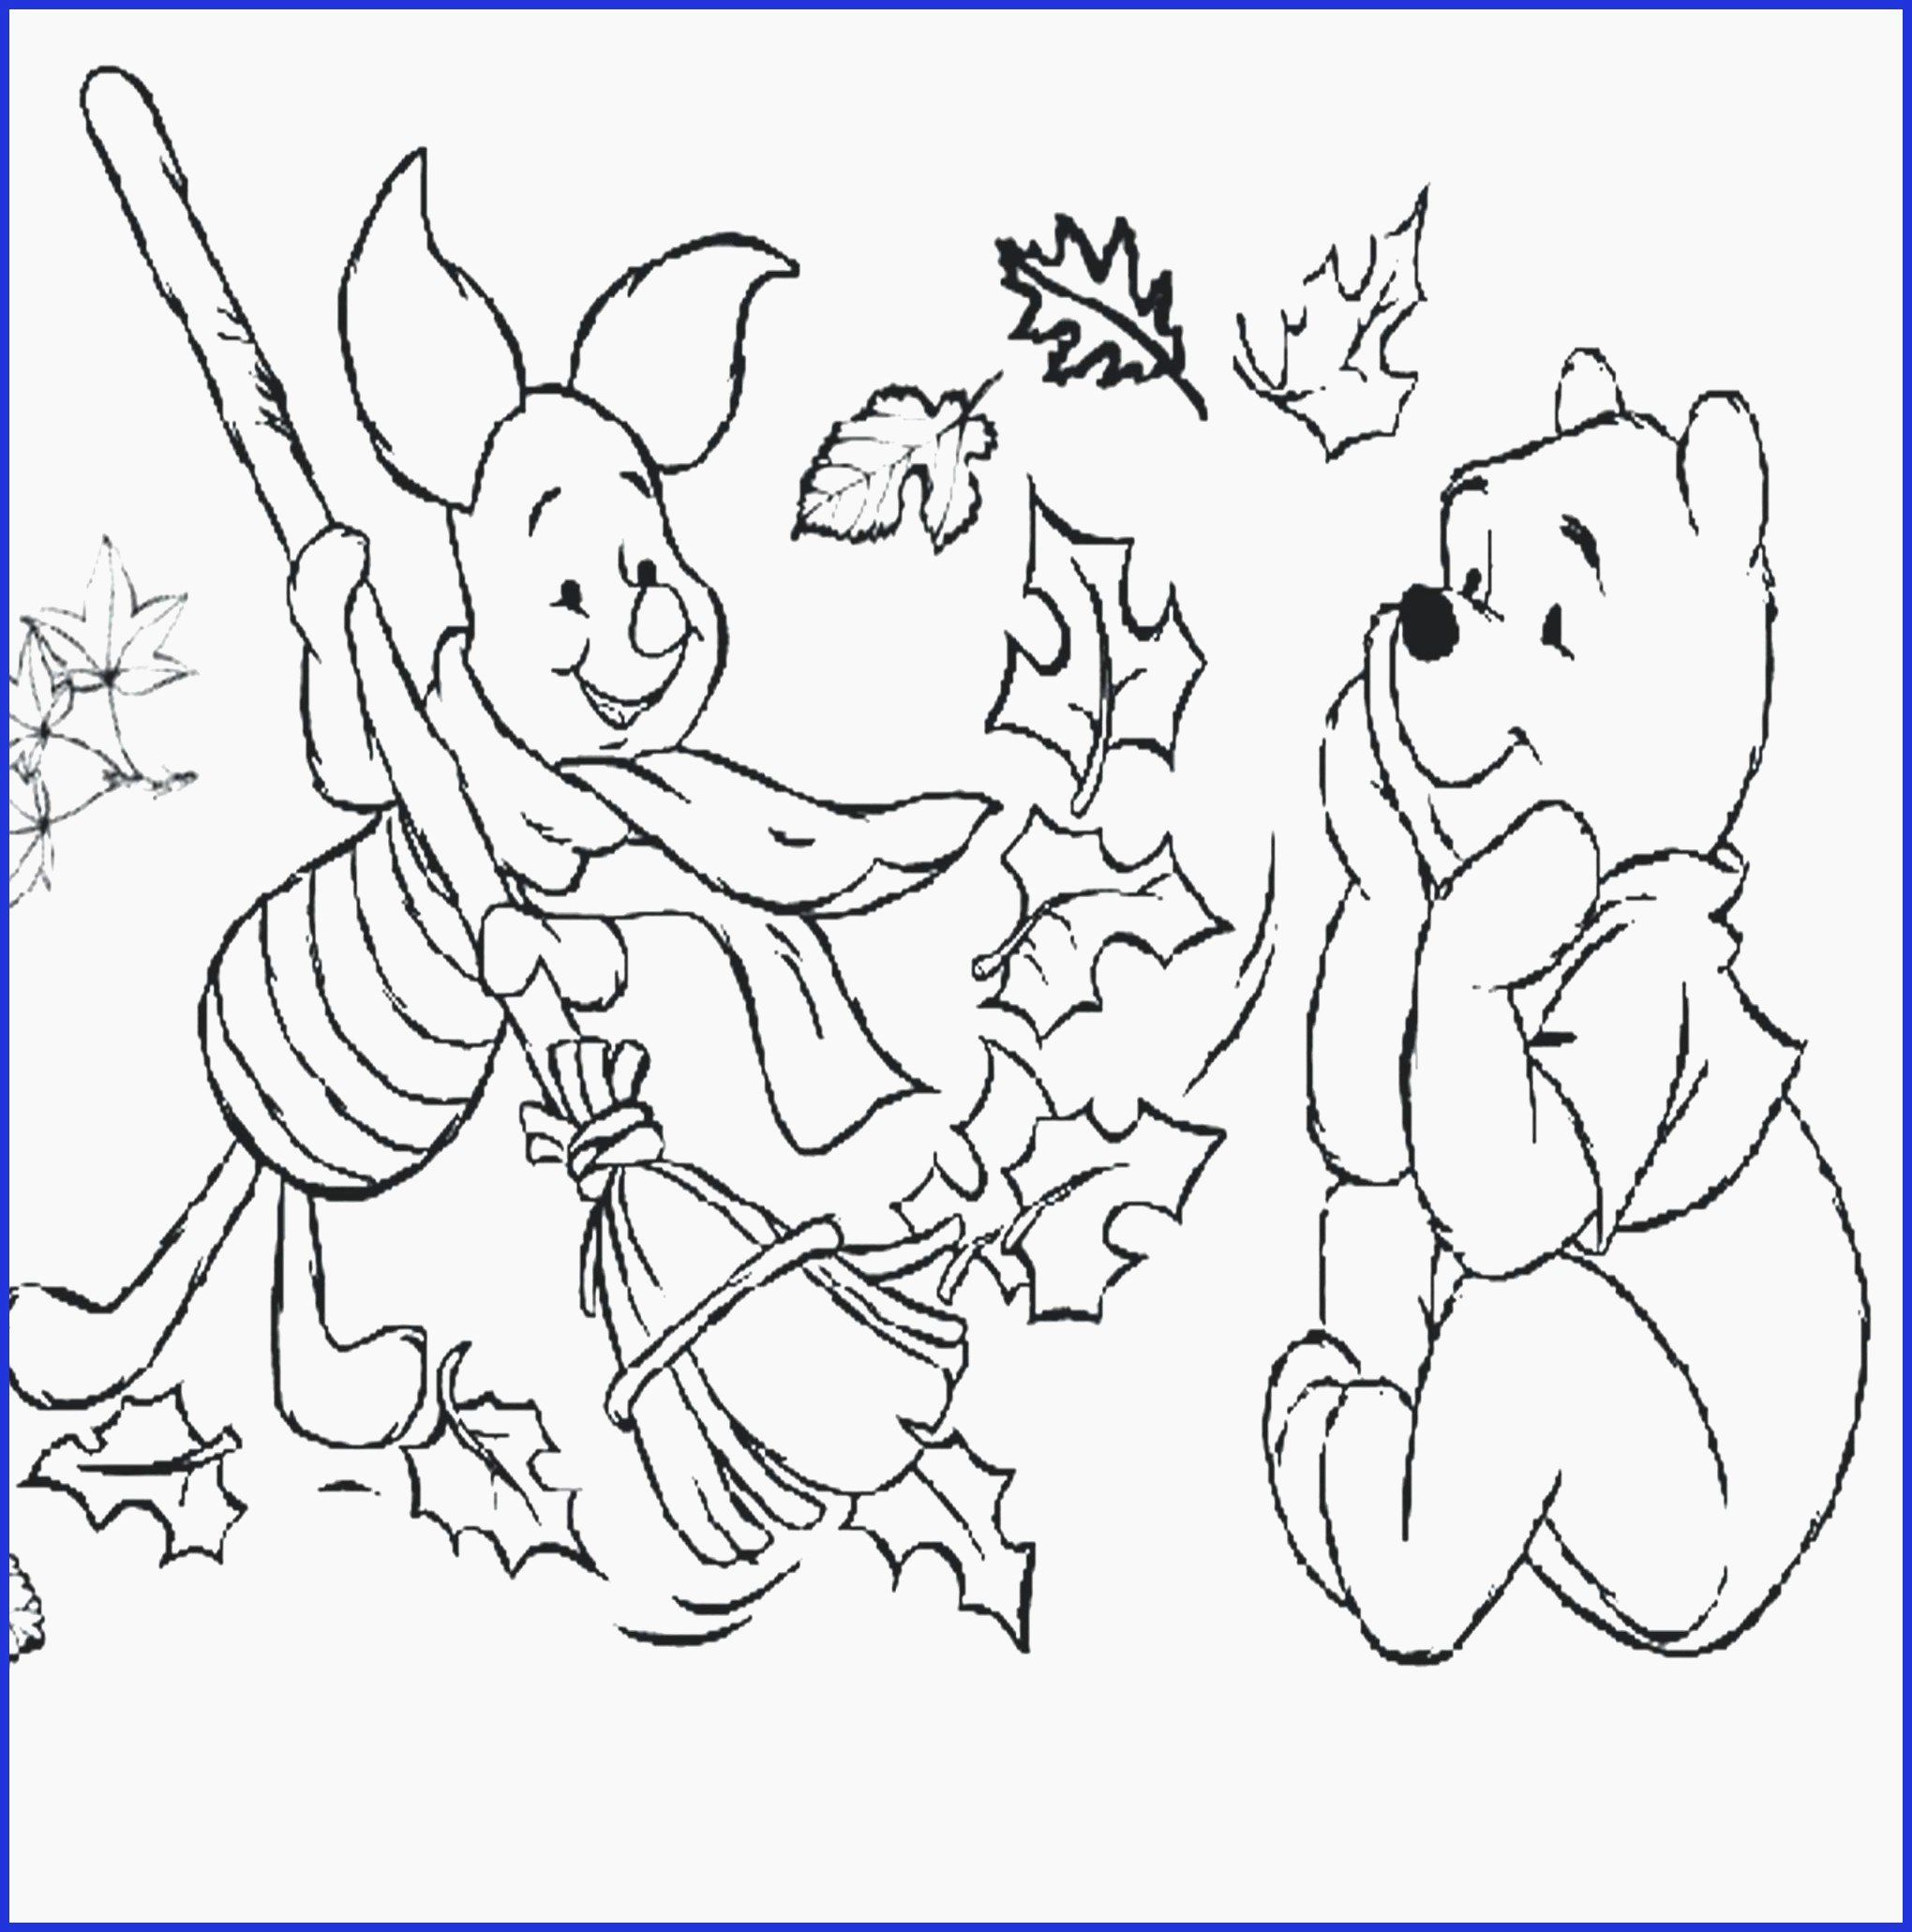 Turn Picture Into Coloring Book Awesome Kids Coloring App Awesome New Turn Into Coloring Pages App Fall Coloring Pages Flag Coloring Pages Halloween Coloring Pages